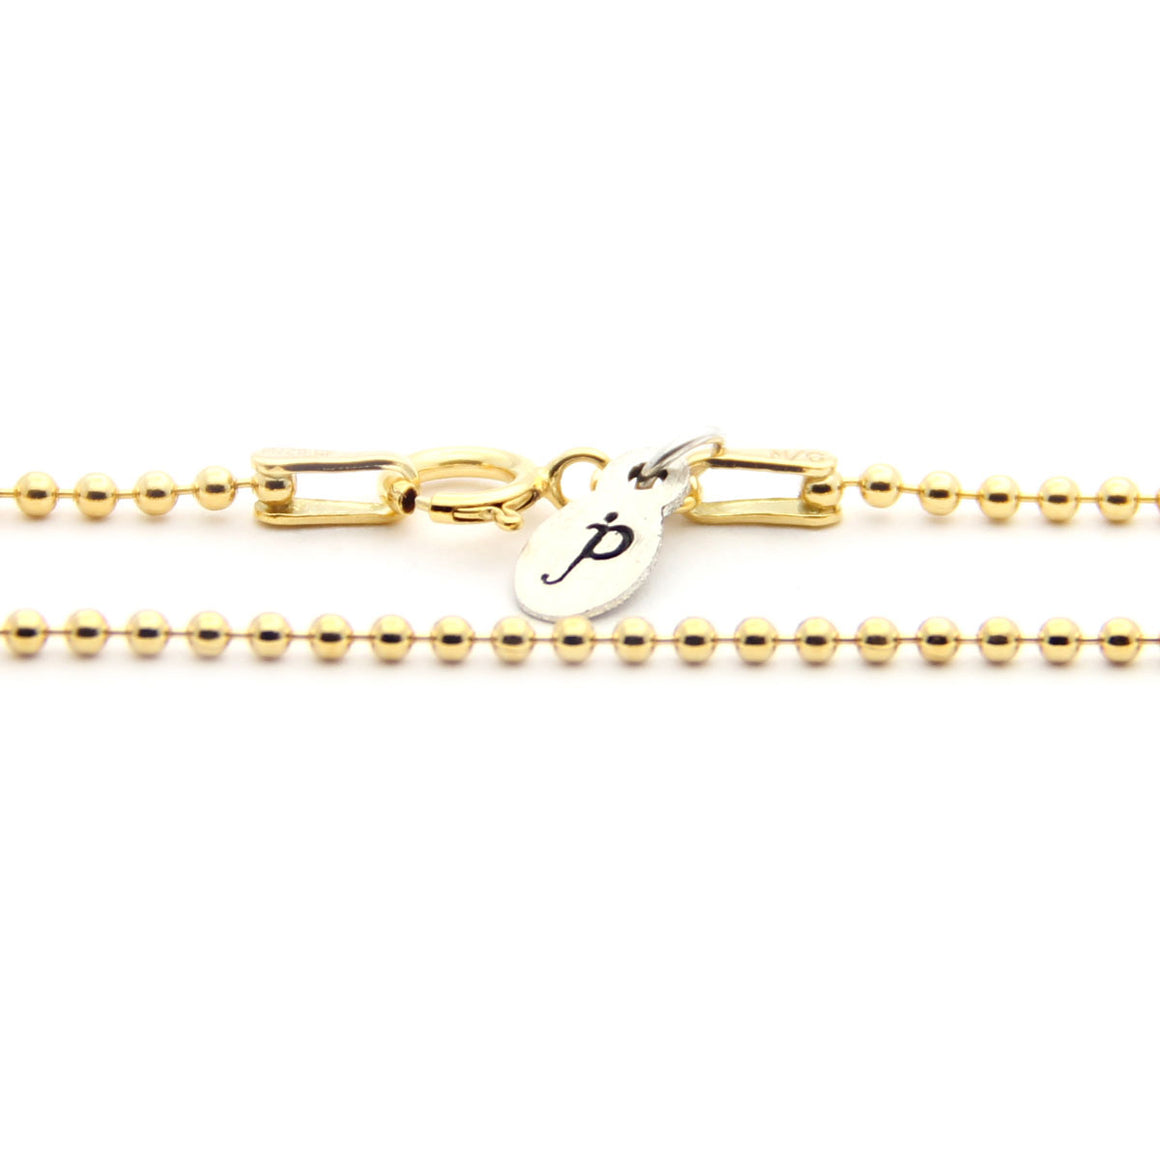 gold ball chain necklace, gold necklace add on, design your own jewelry, jenny present®